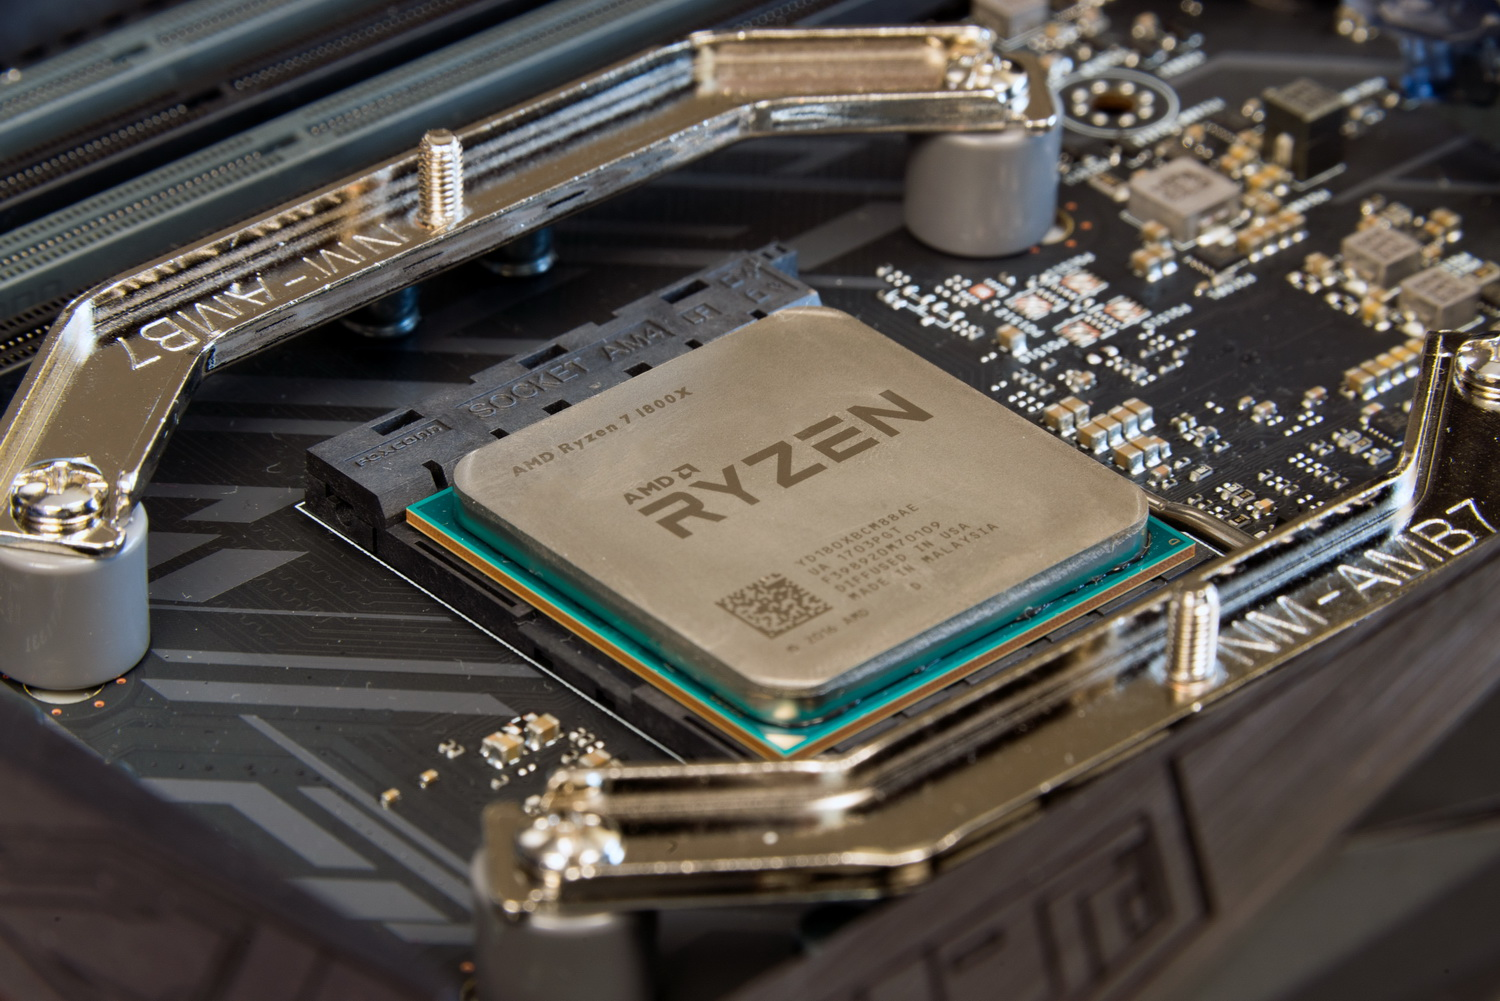 Windows 10 Scheduler may be limiting AMD Ryzen performance